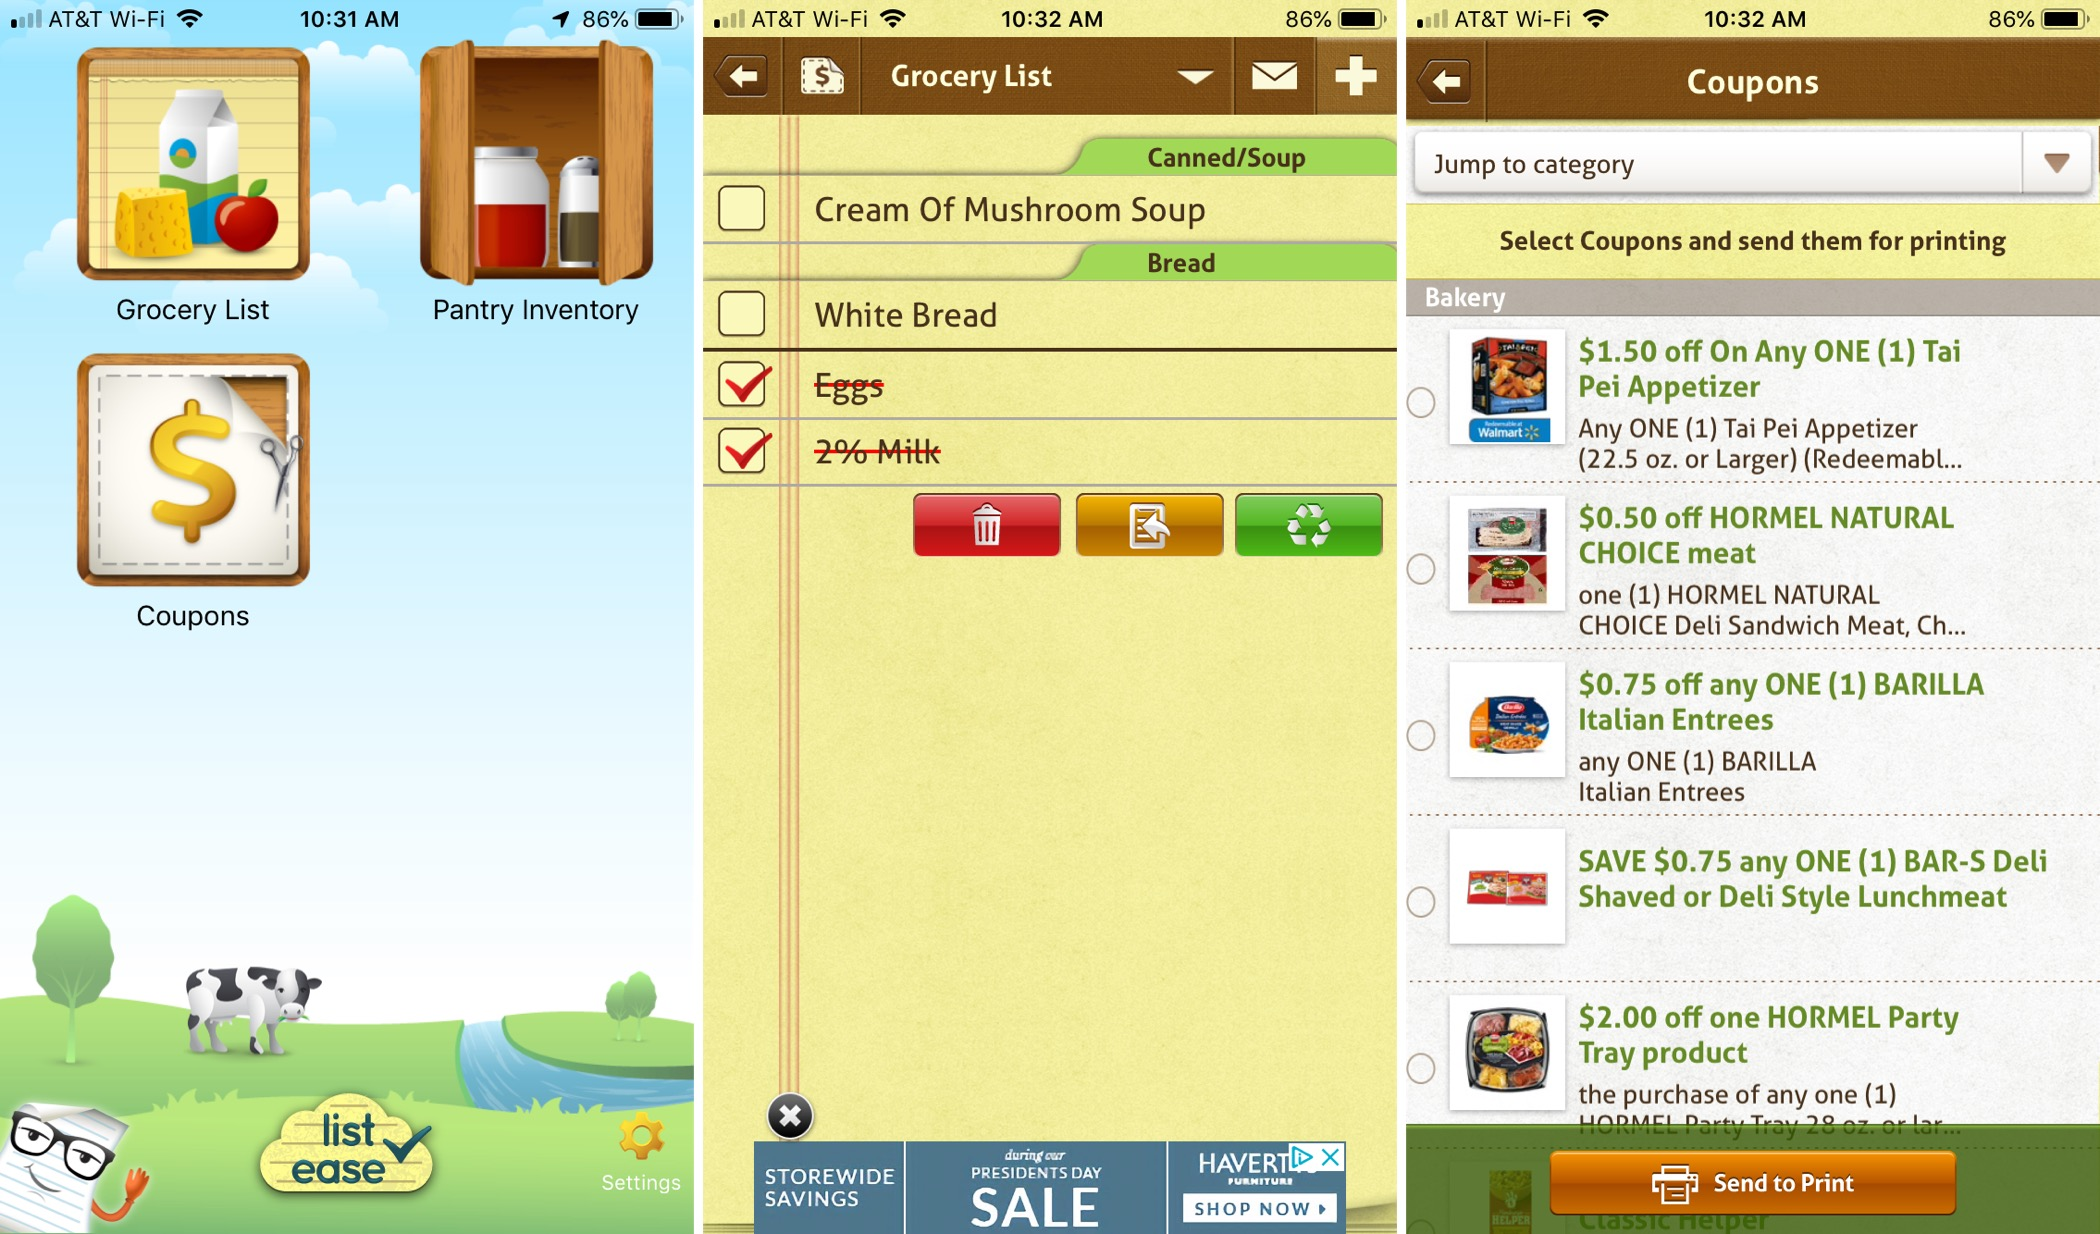 Shopping List Ease Groceries App for iPhone